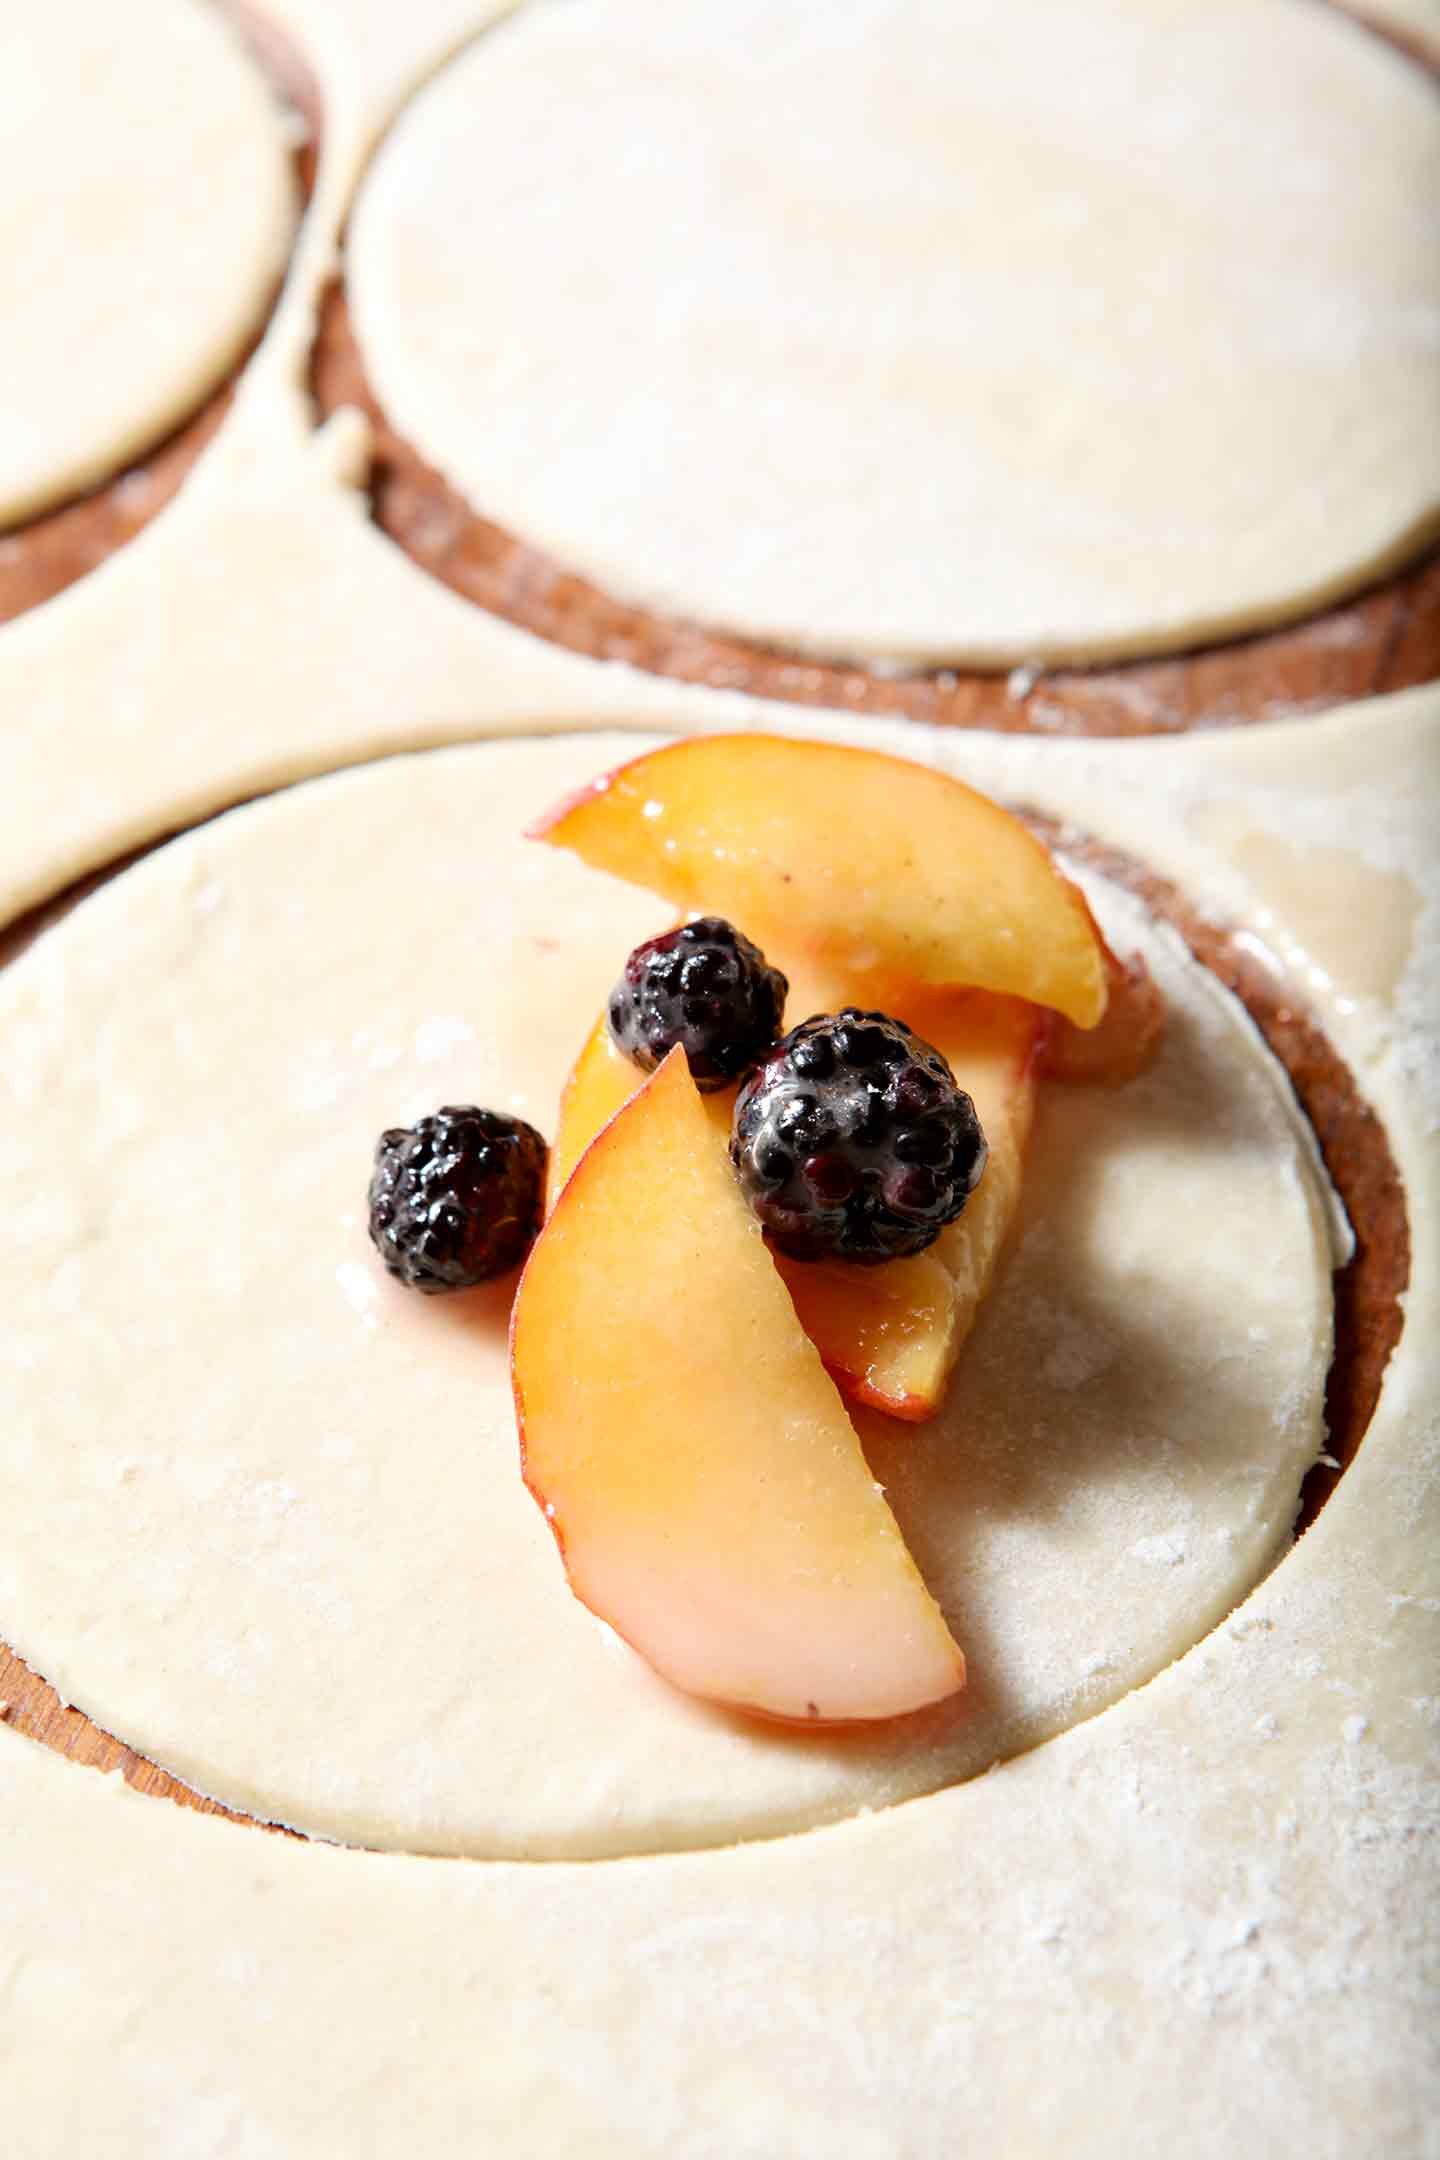 Sliced peaches and blackberries are placed in a pie crust round